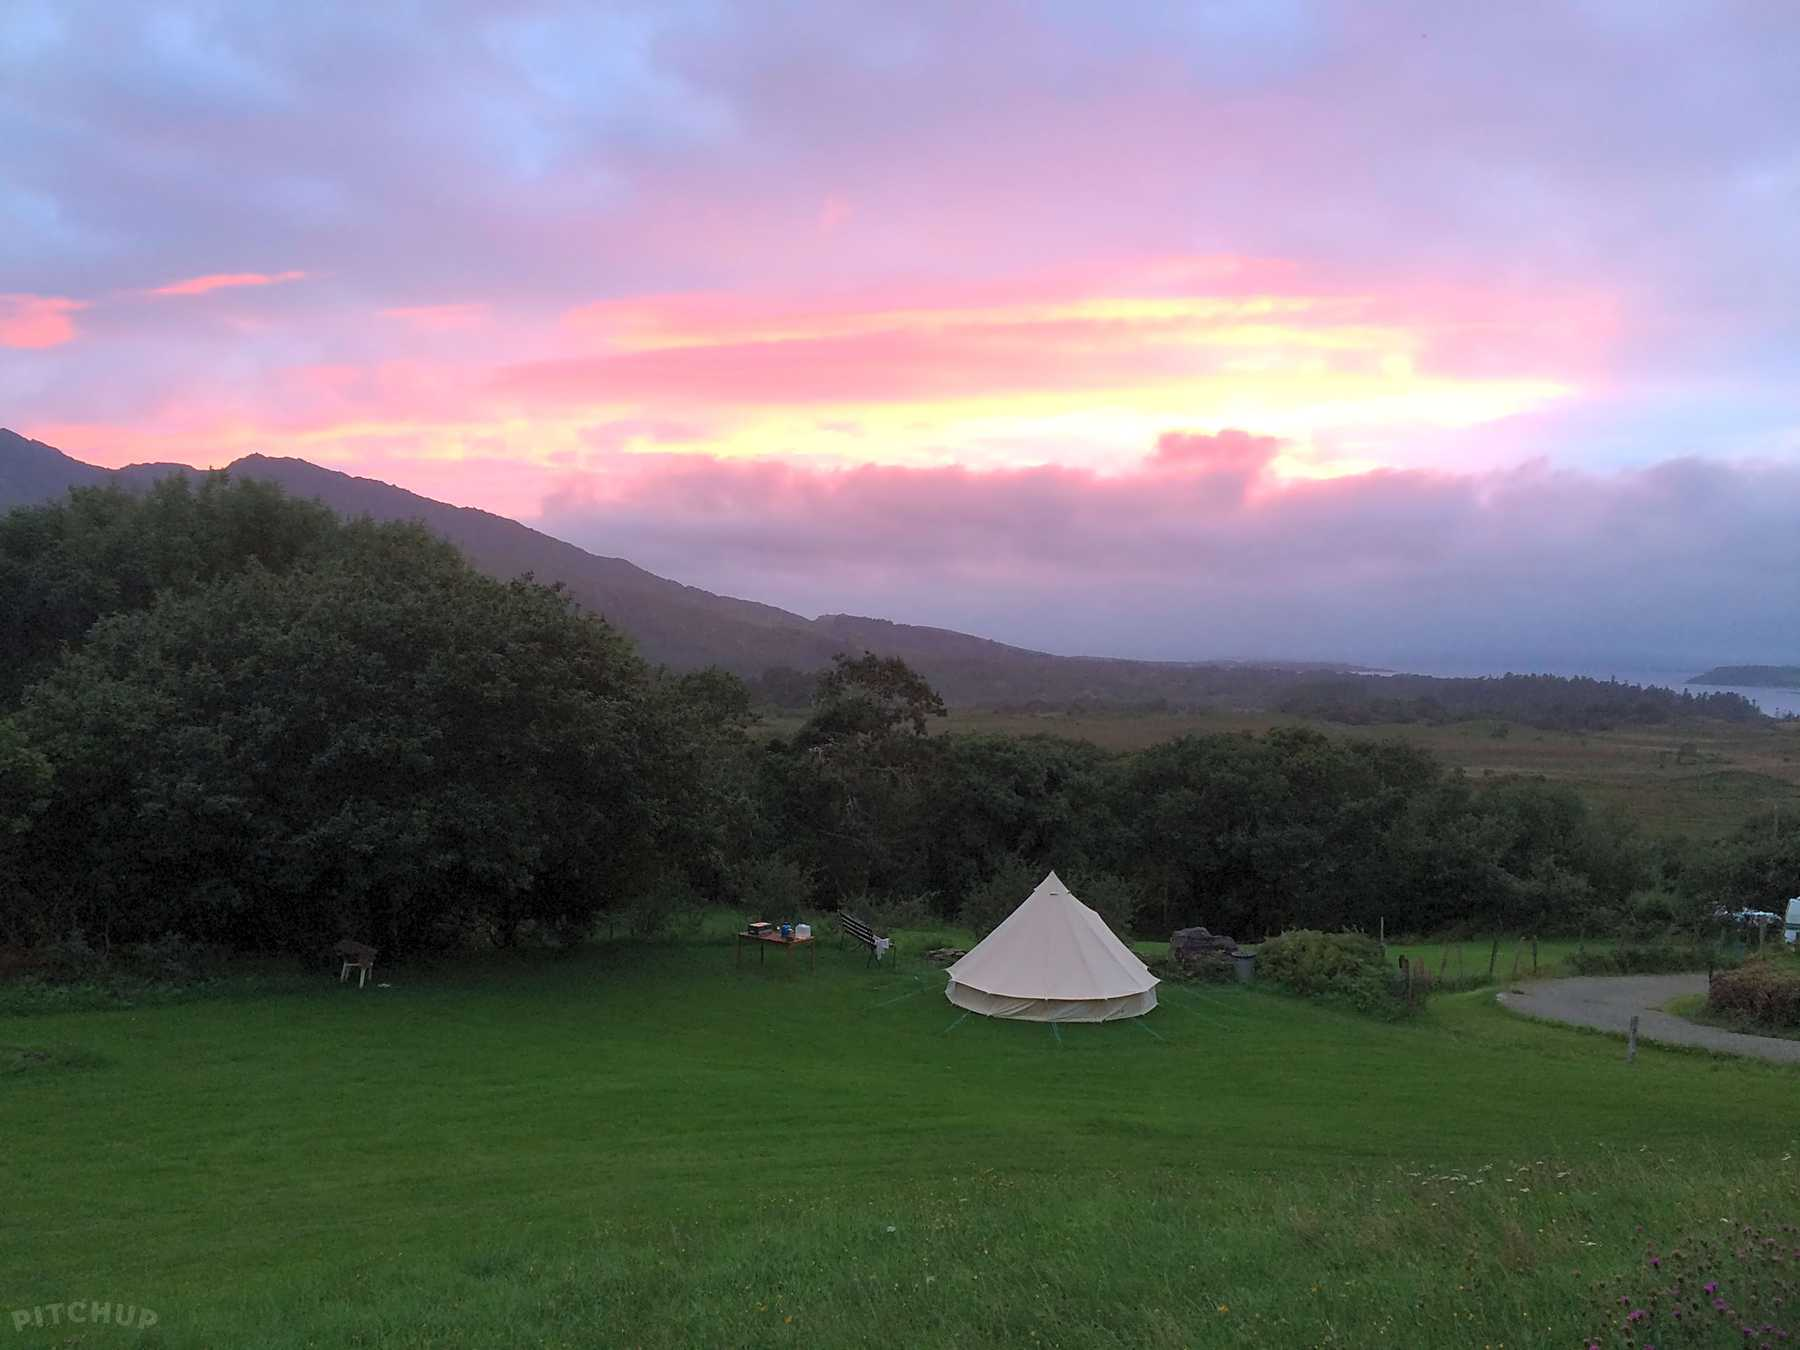 Kenmare Motorhome Campsite Review - Motorhome confx.co.uk